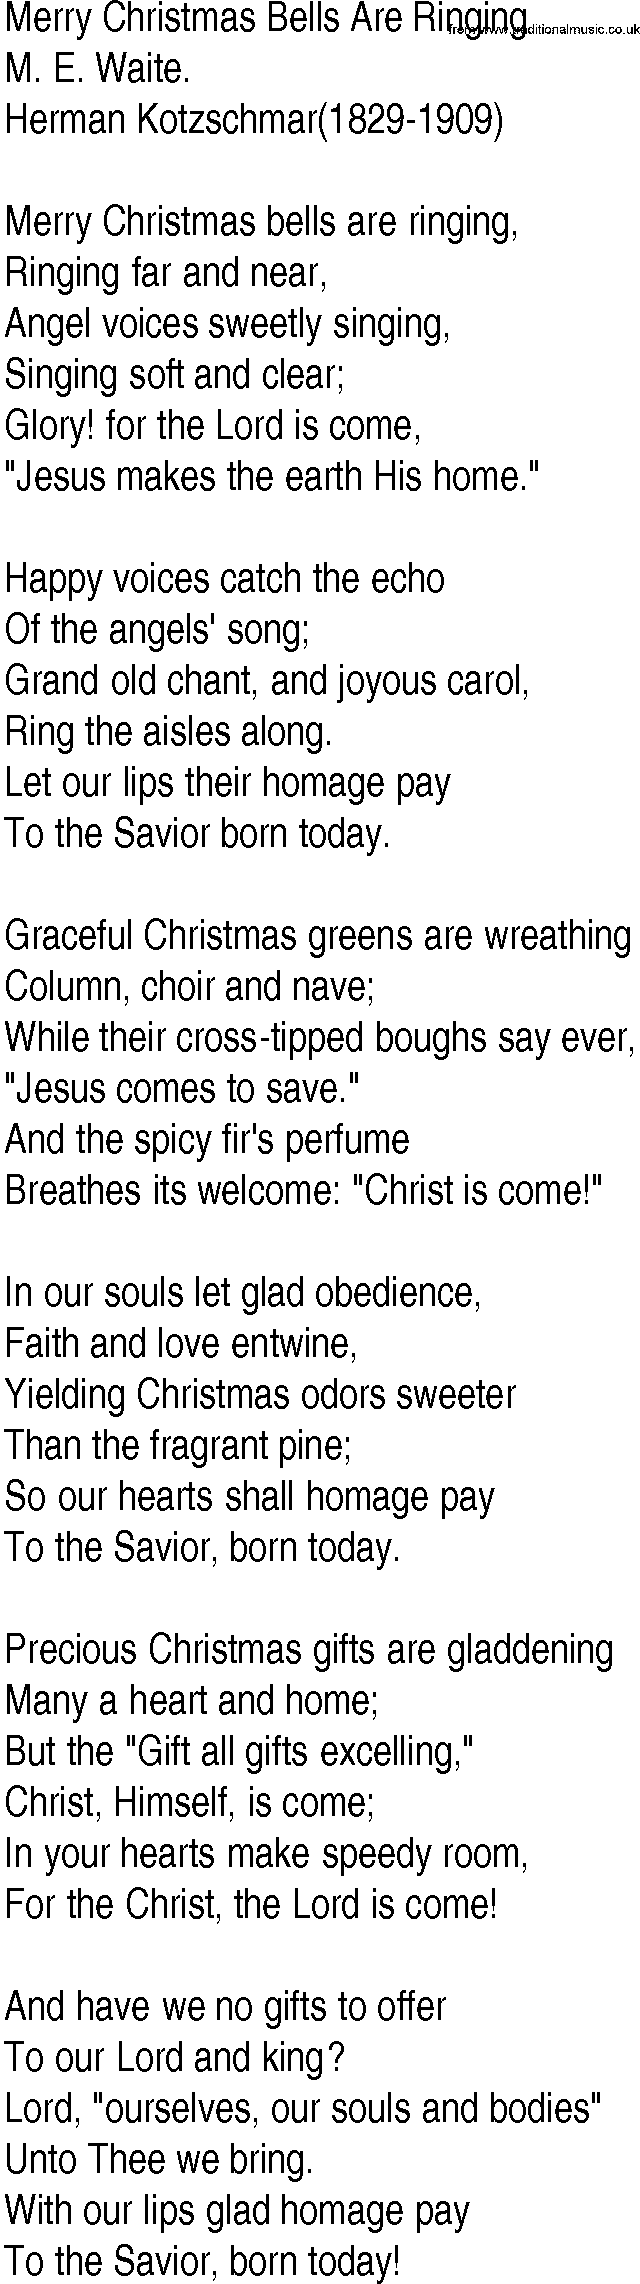 Hymn and Gospel Song Lyrics for Merry Christmas Bells Are Ringing ...